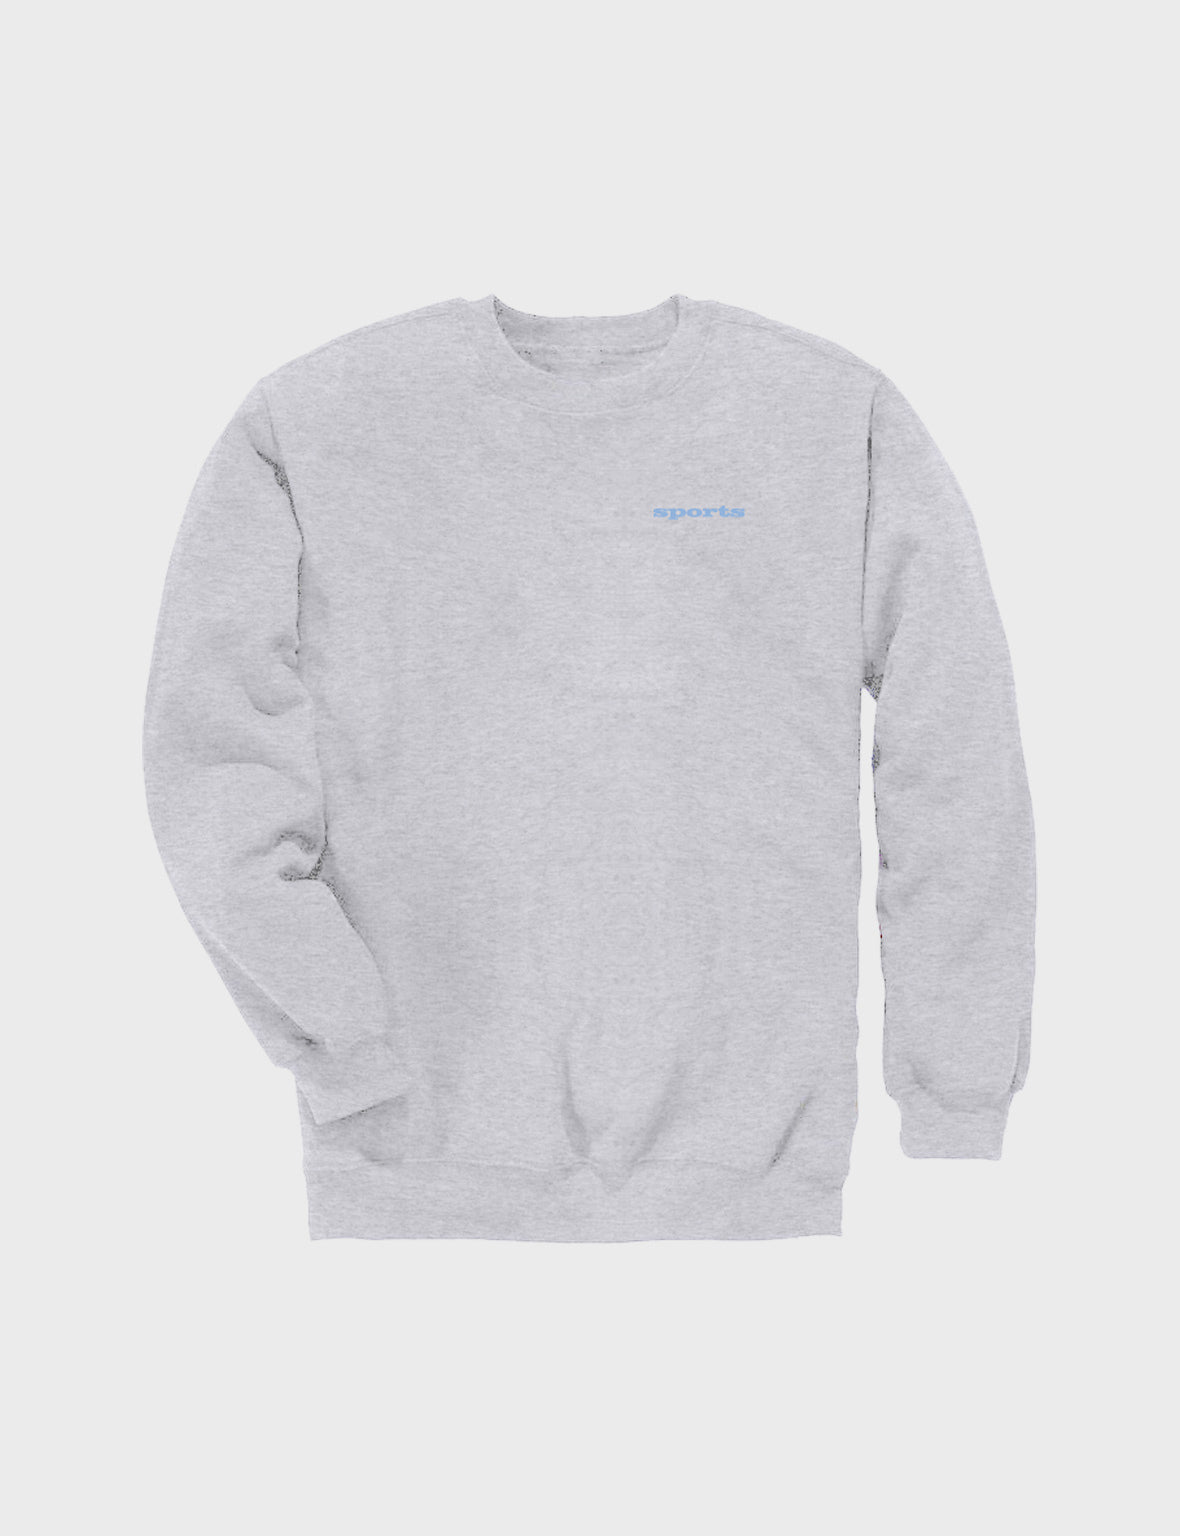 Sports Crewneck Sweatshirt (Grey)